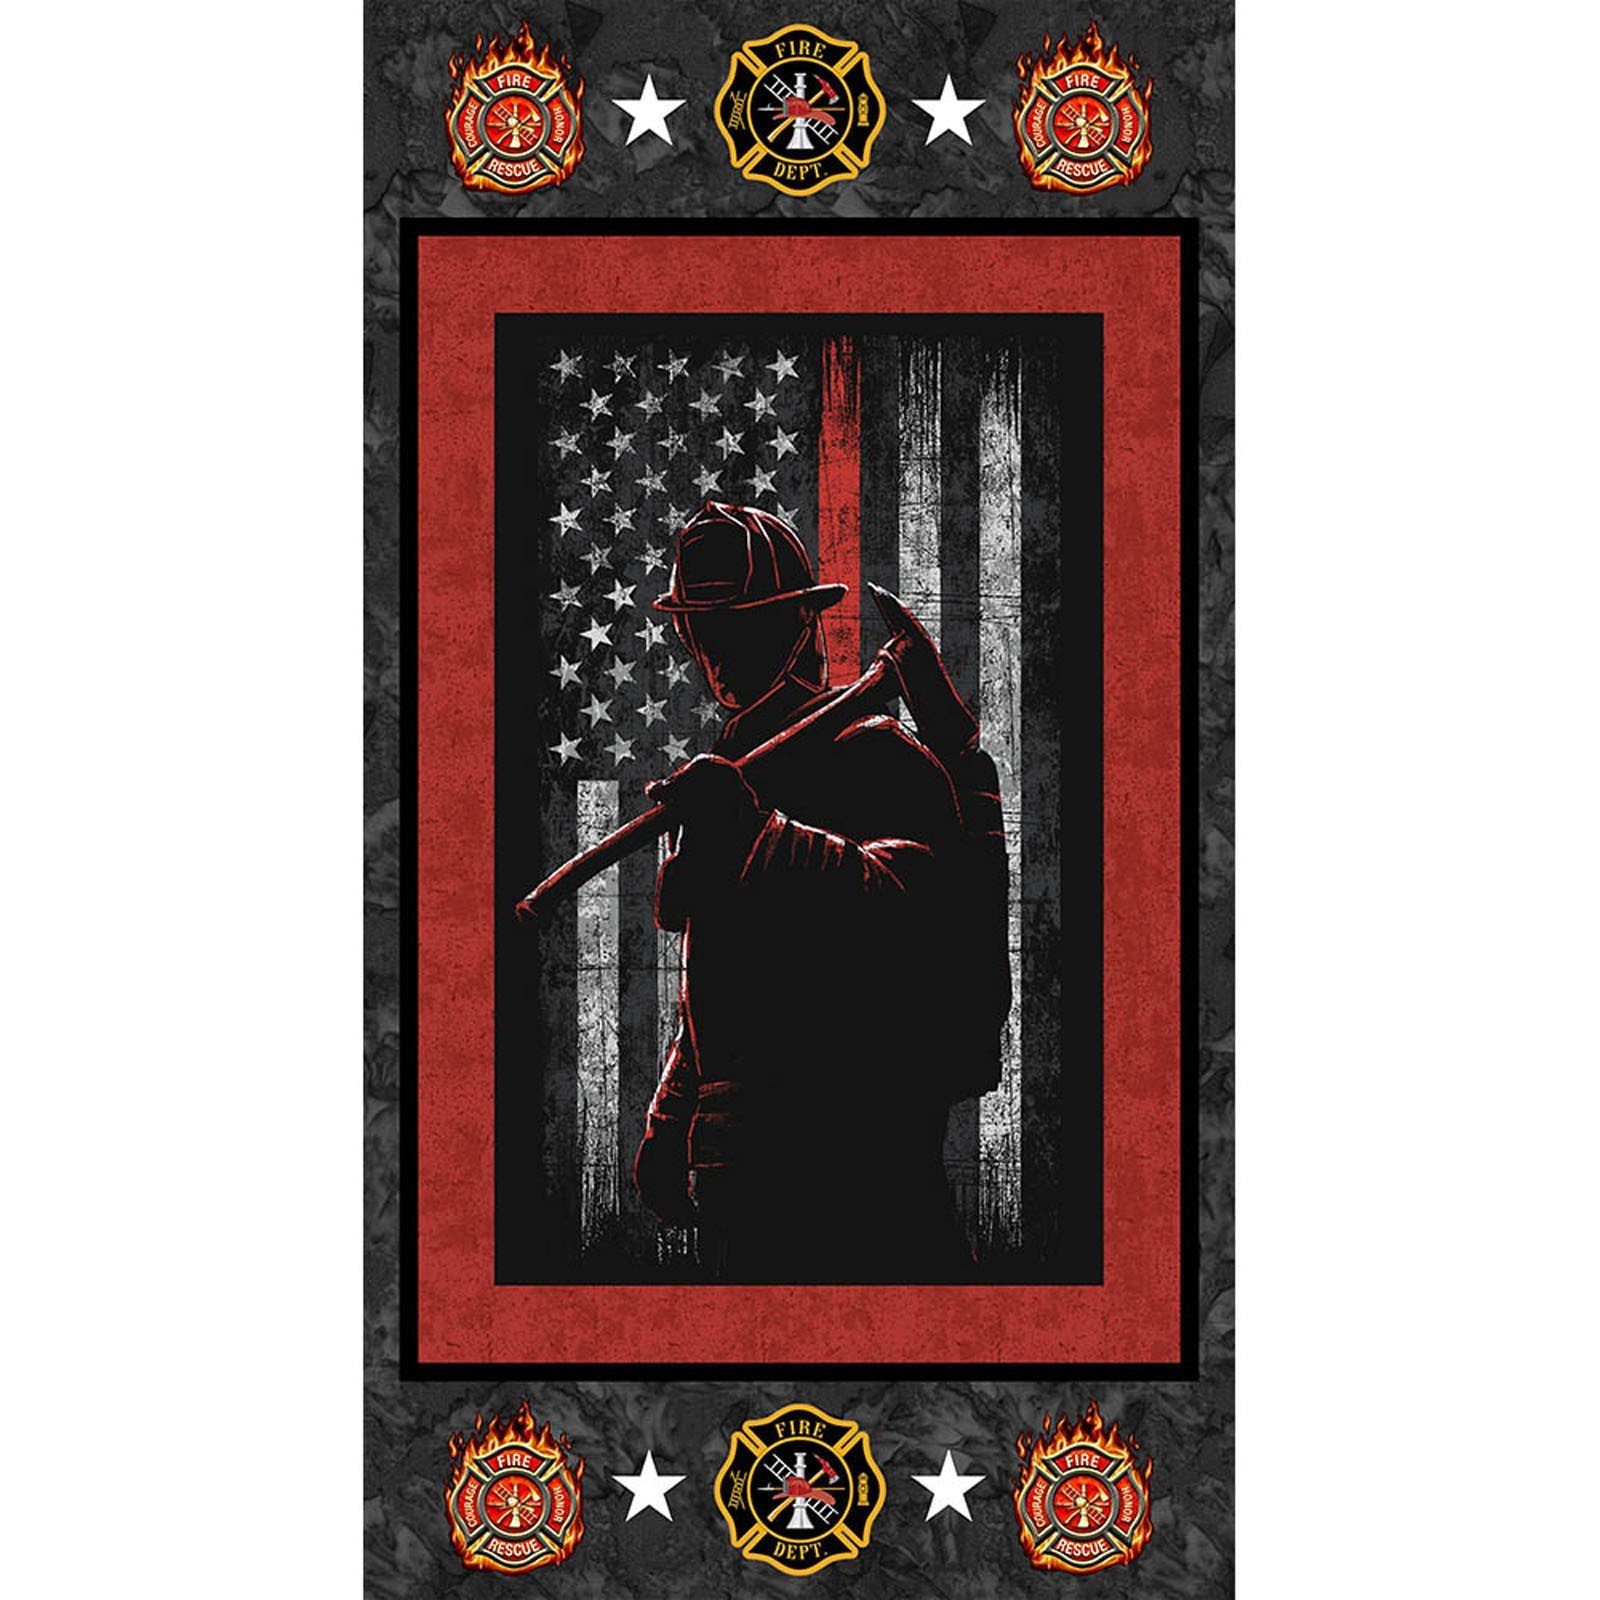 Hometown Heroes Firefighter Panel<br/>Print Concepts 1195FF